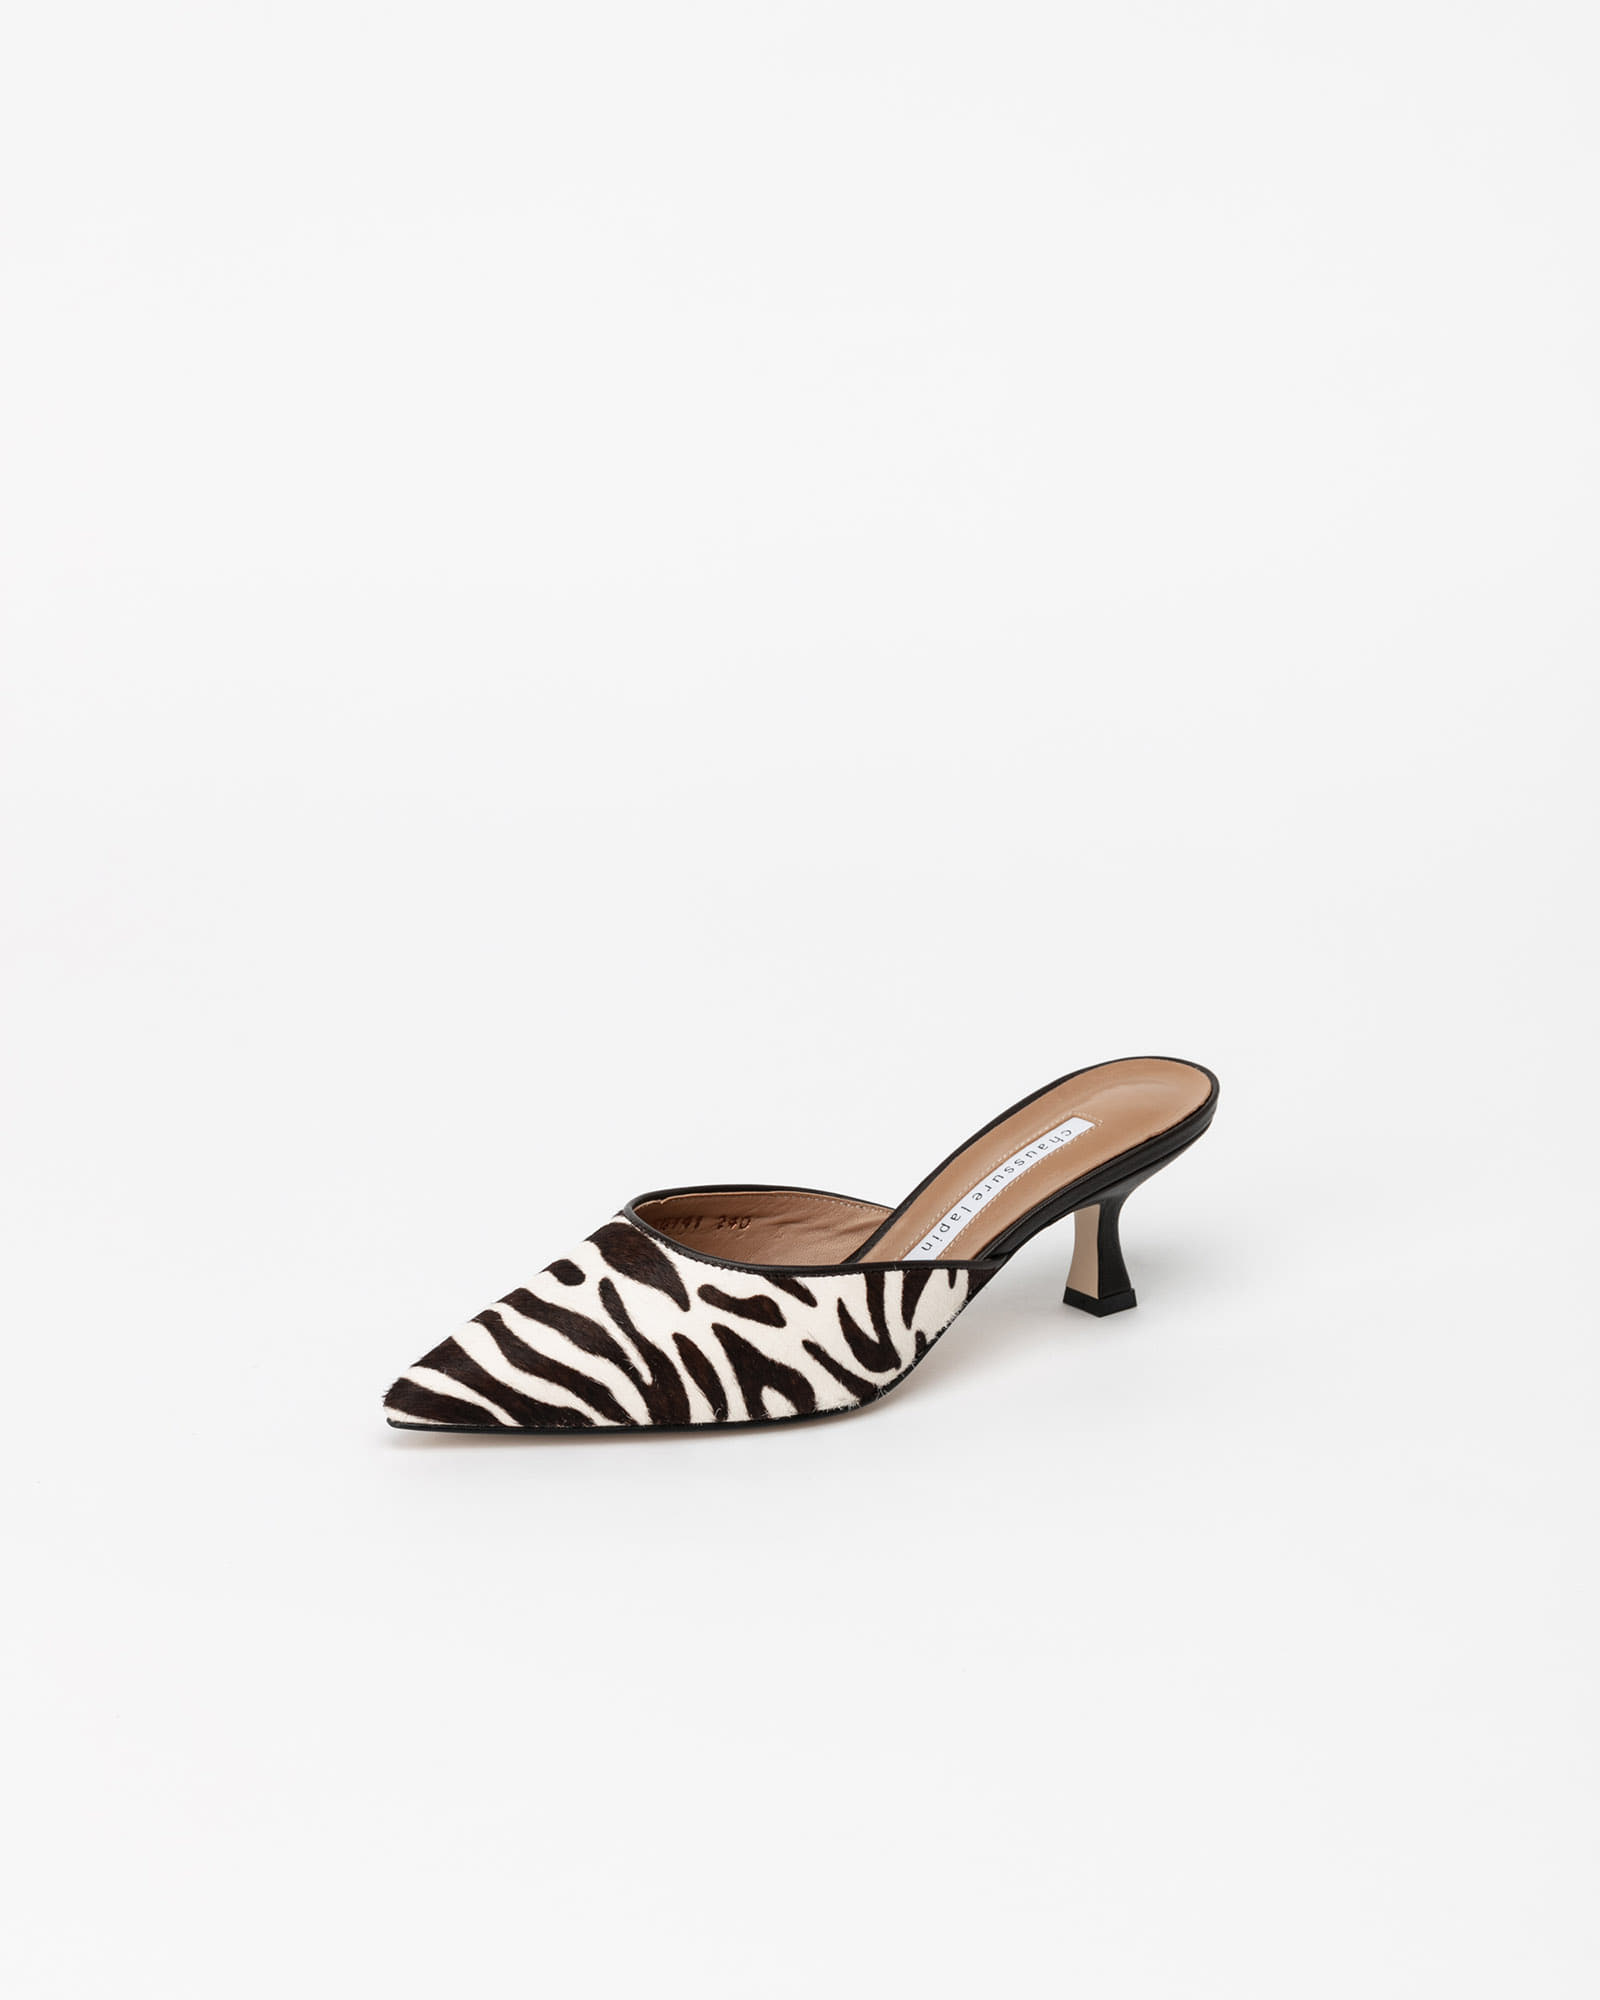 Canna Calf Hair Mules in Brown Zebra Prints